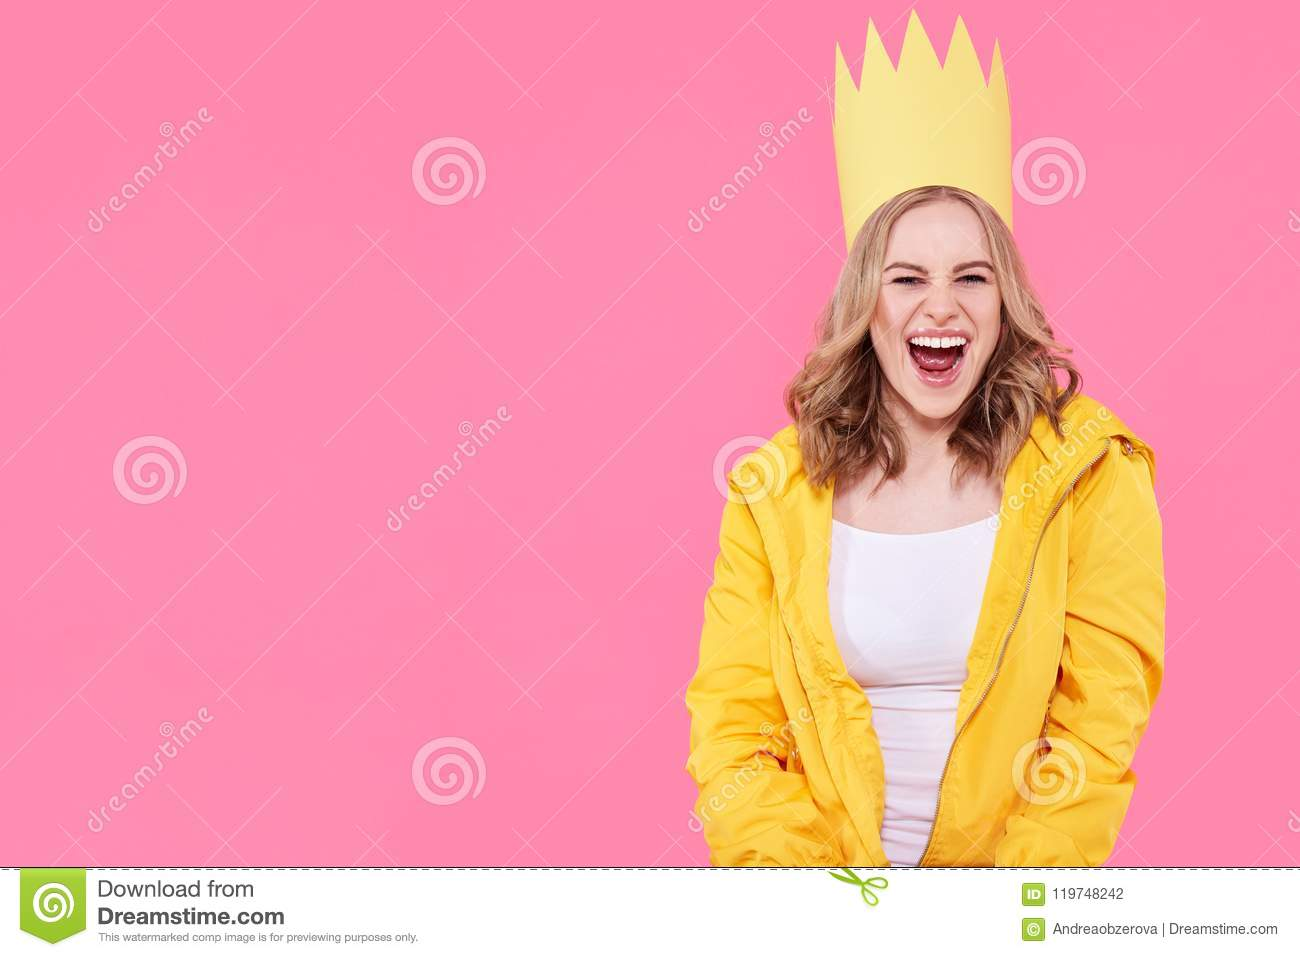 Beautiful teenage girl in bright yellow jacket and party hat shouting with excitement. Attractive cool woman fashion portrait.